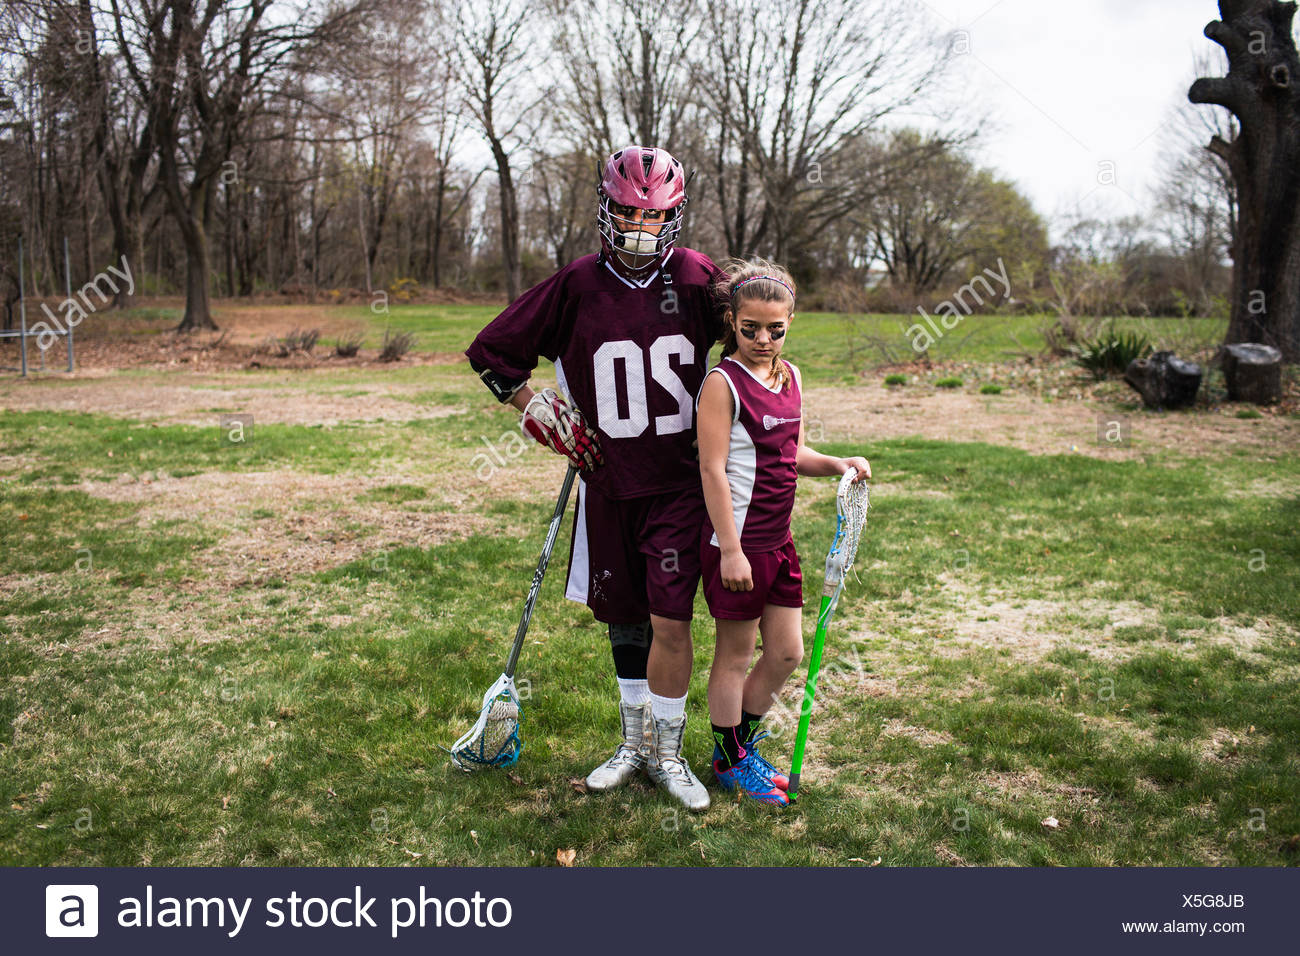 Brother and sister wearing lacrosse uniforms Photo Stock